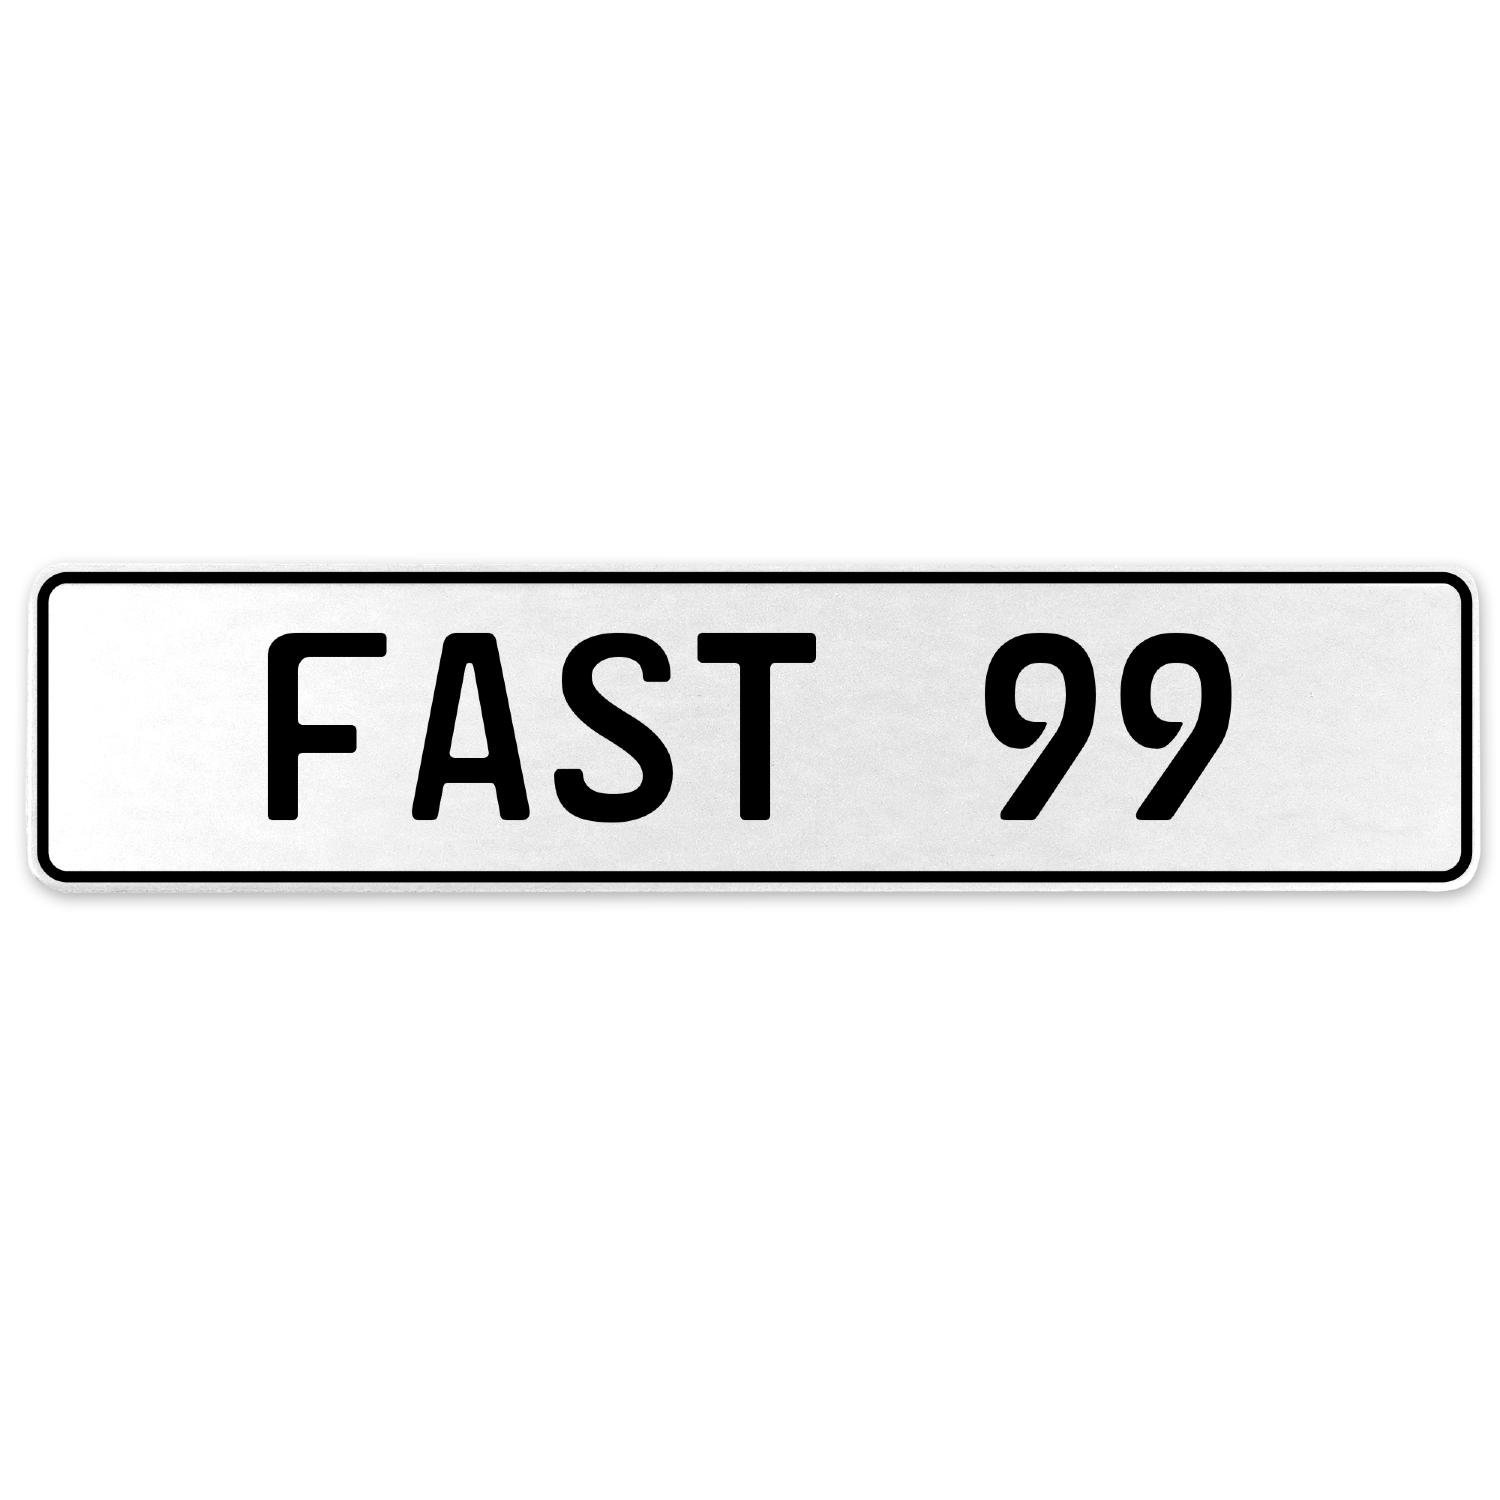 Vintage Parts 557369 Fast 99 White Stamped Aluminum European License Plate